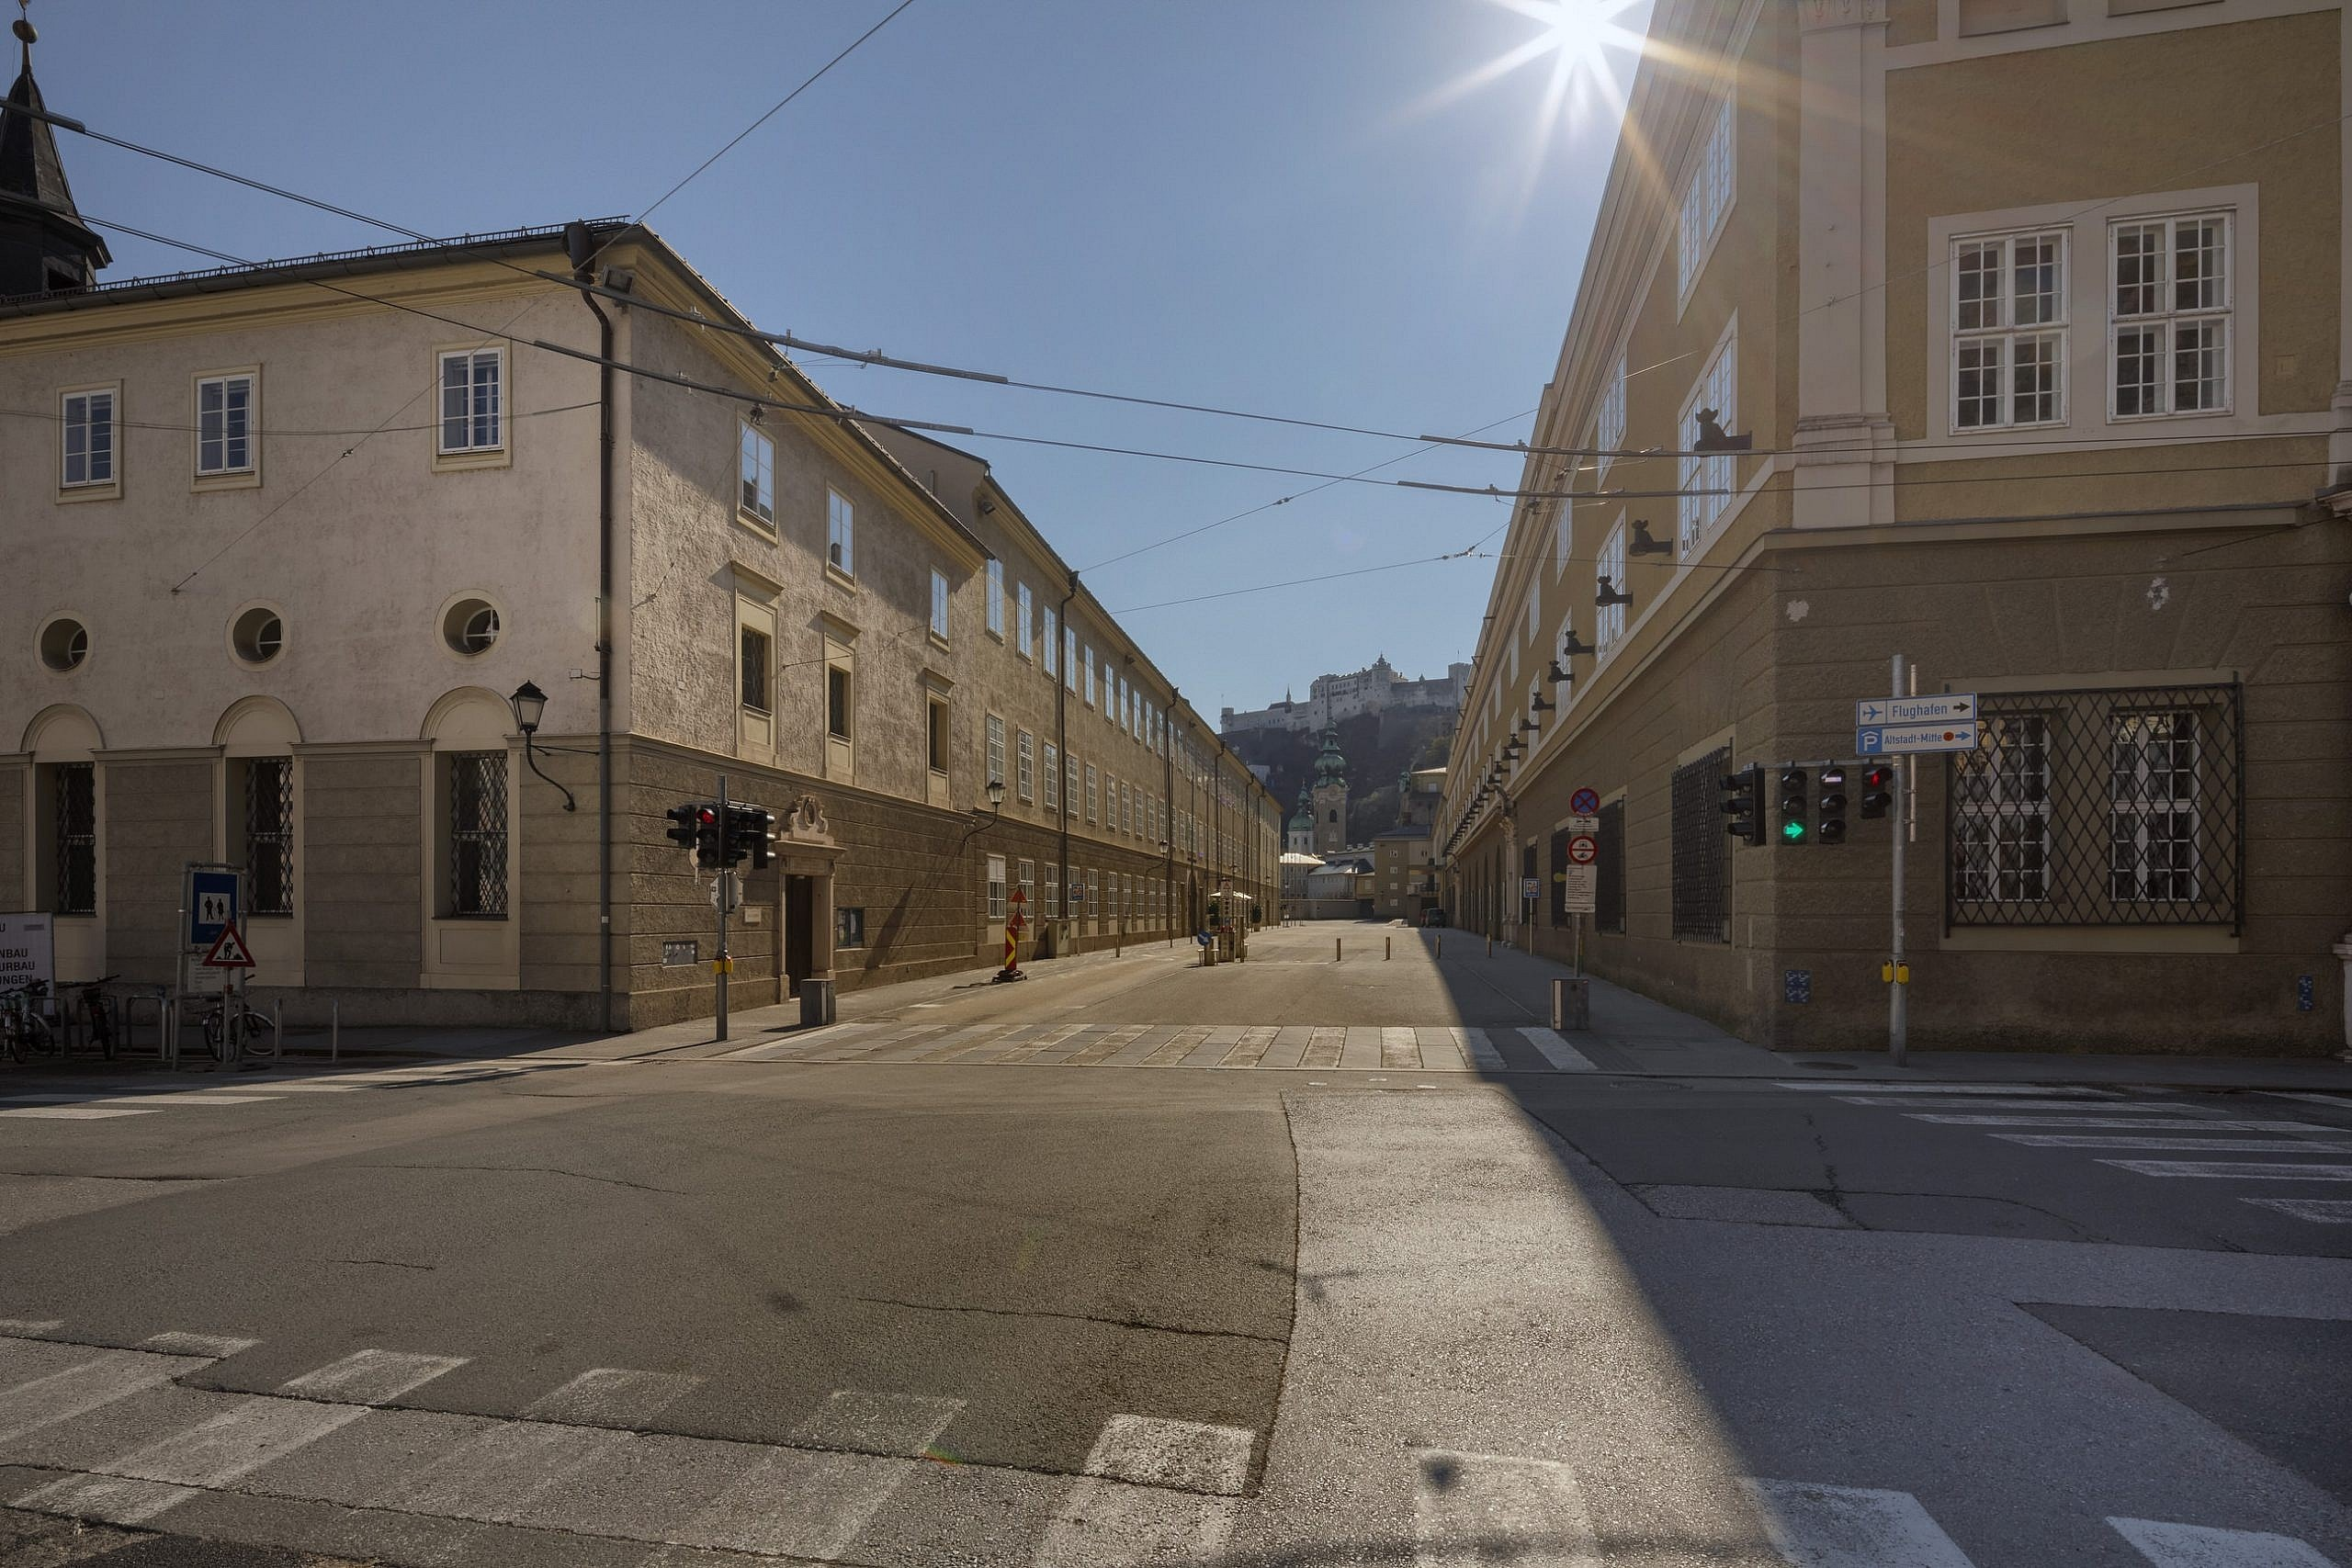 Photograph of an empty Hofstallgasse, Salzburg